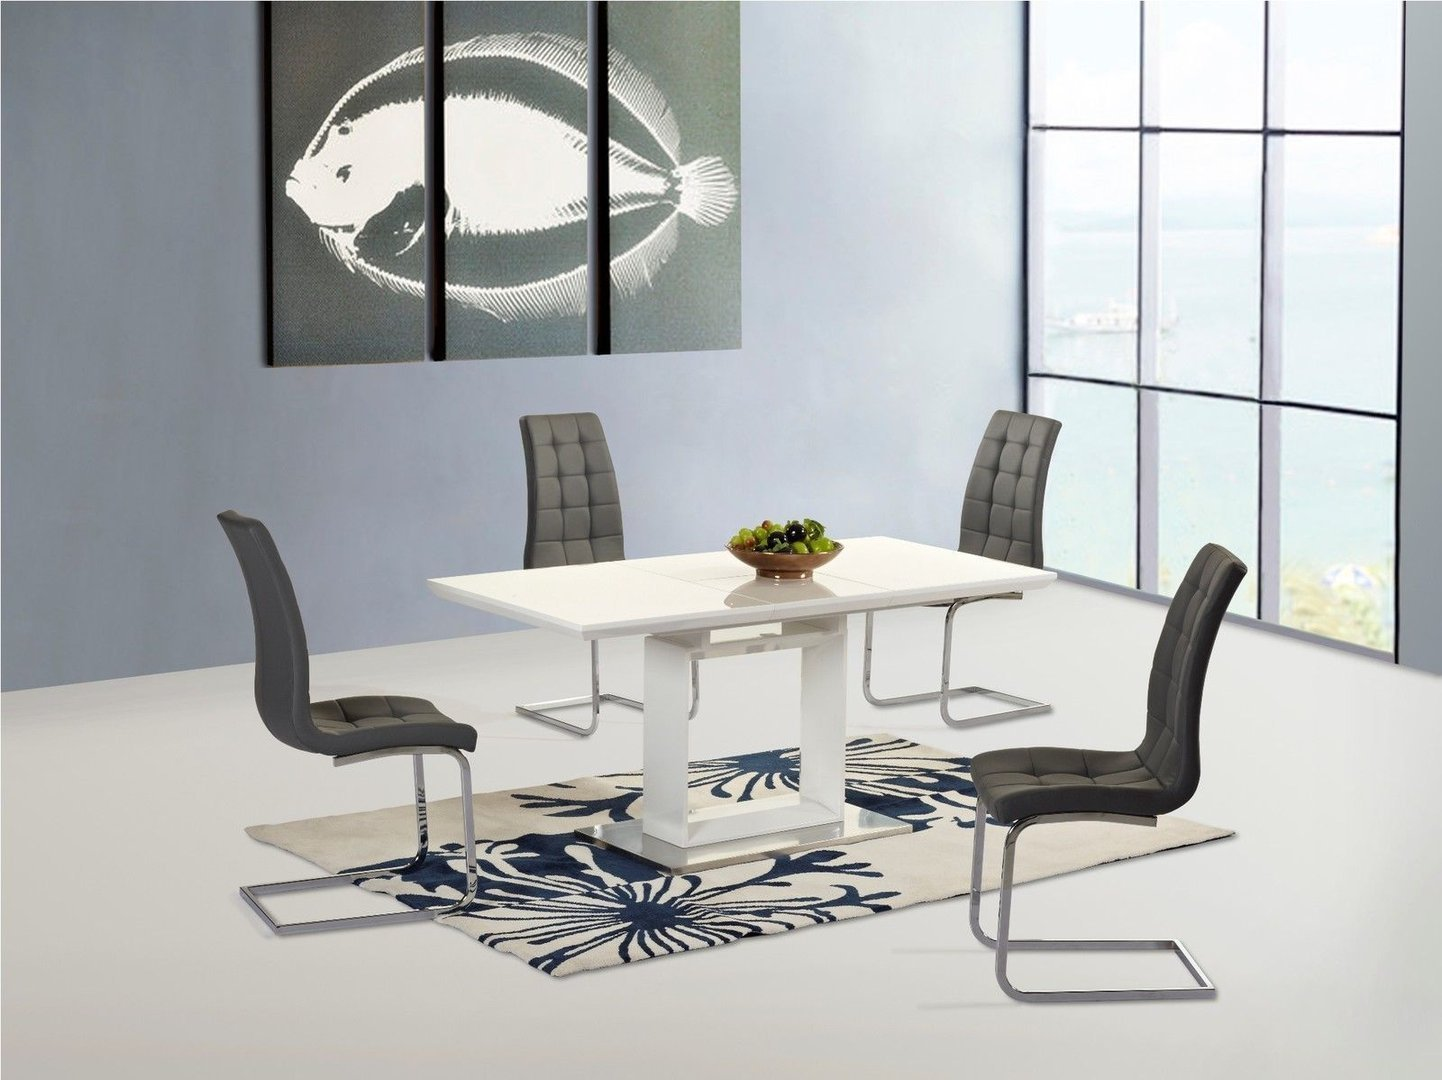 New White High Gloss Extending Dining Table And 4 Grey Chairs Set